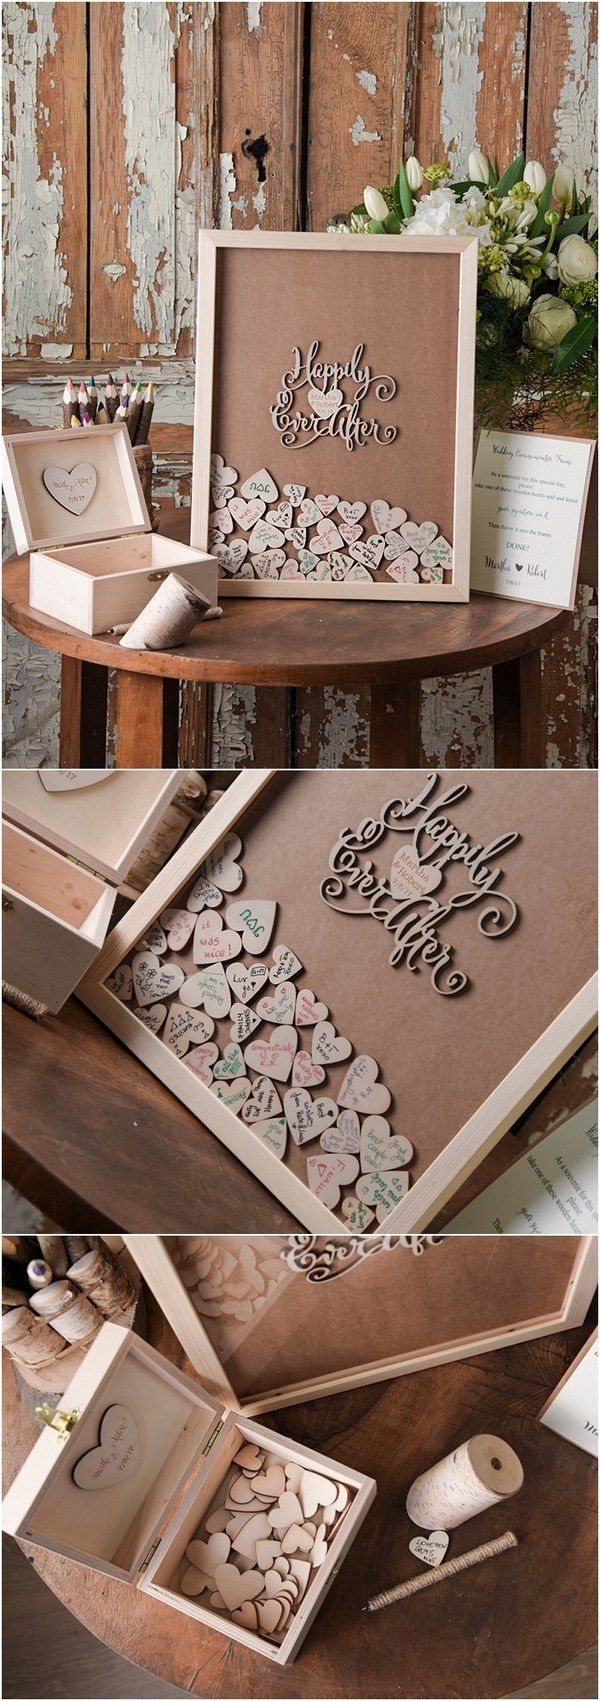 Rustic Laser Cut Wood Wedding Guest Book- Happy Ever After / http://www.deerpearlflowers.com/rustic-wedding-guest-books-botanical-wedding-invitations/